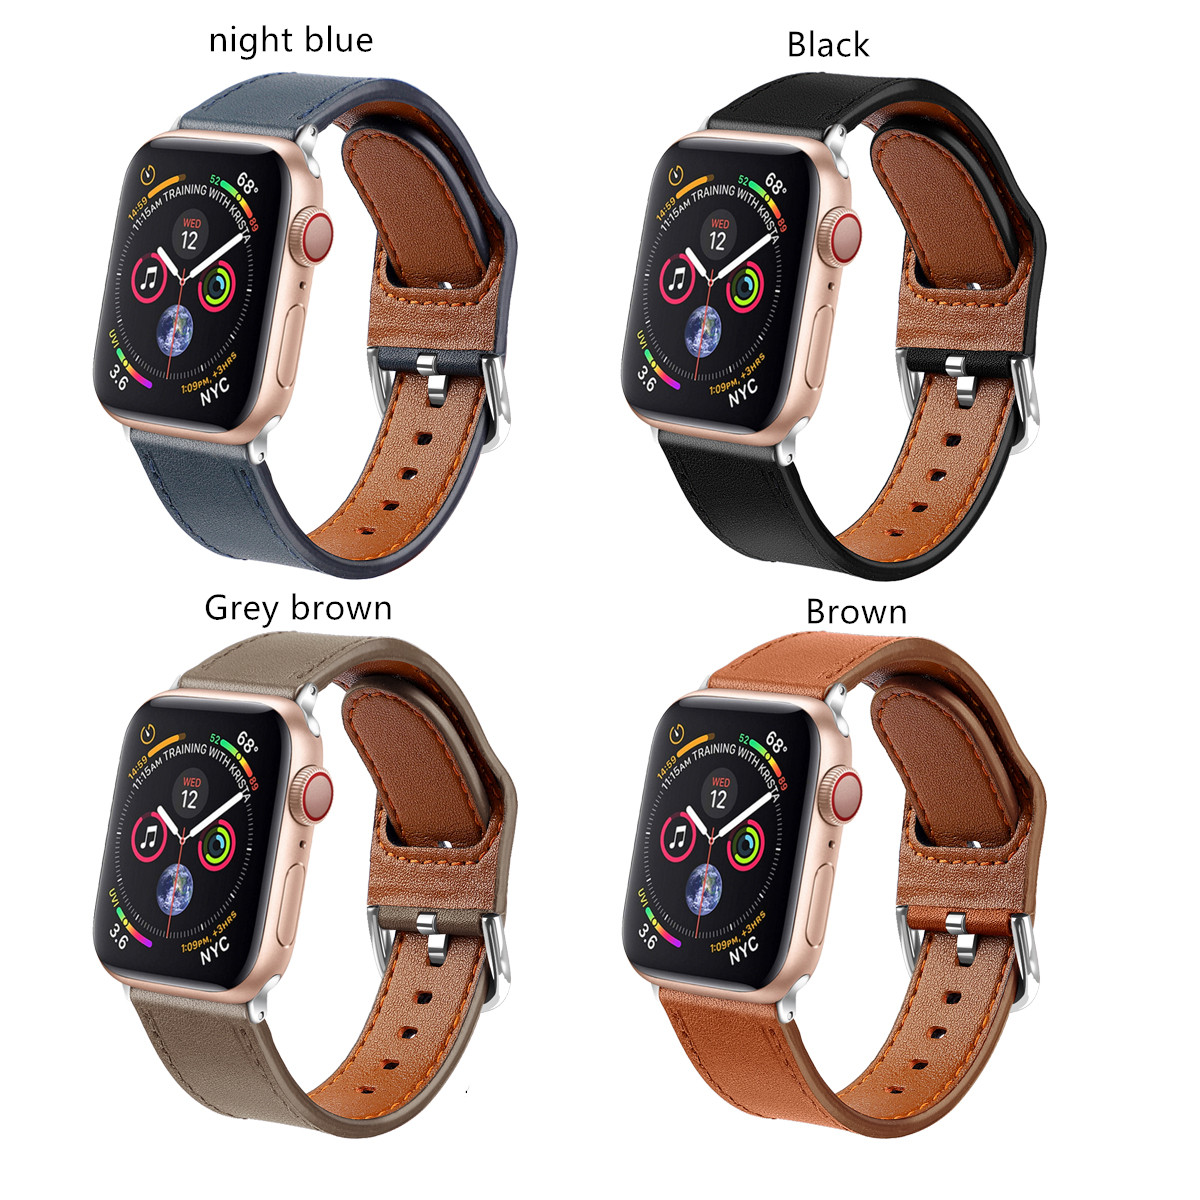 BLAP181124 Hot selling for apple watch 38mm, 40mm, 42mm, 44mm leather watch band